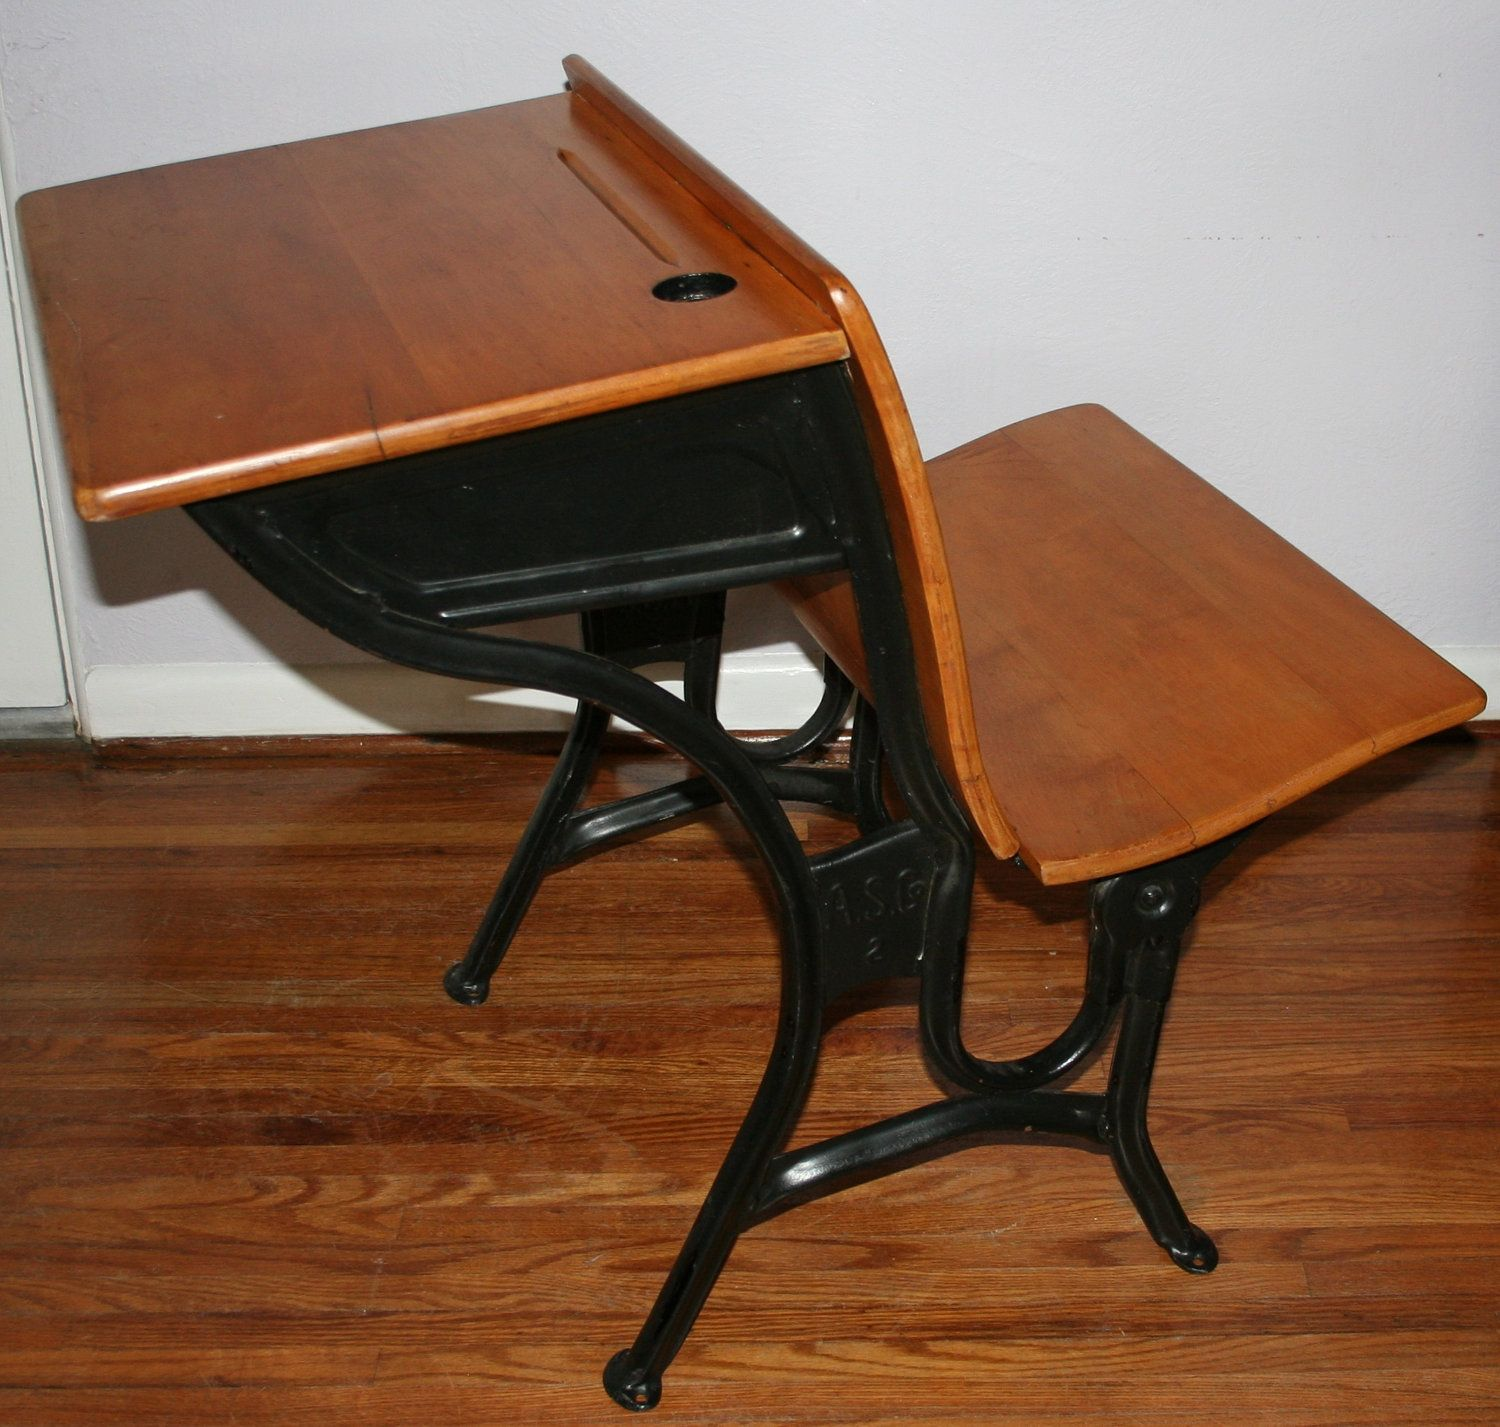 Wooden School Chairs Old Wooden School Desks With Inkwells And Value Agc1